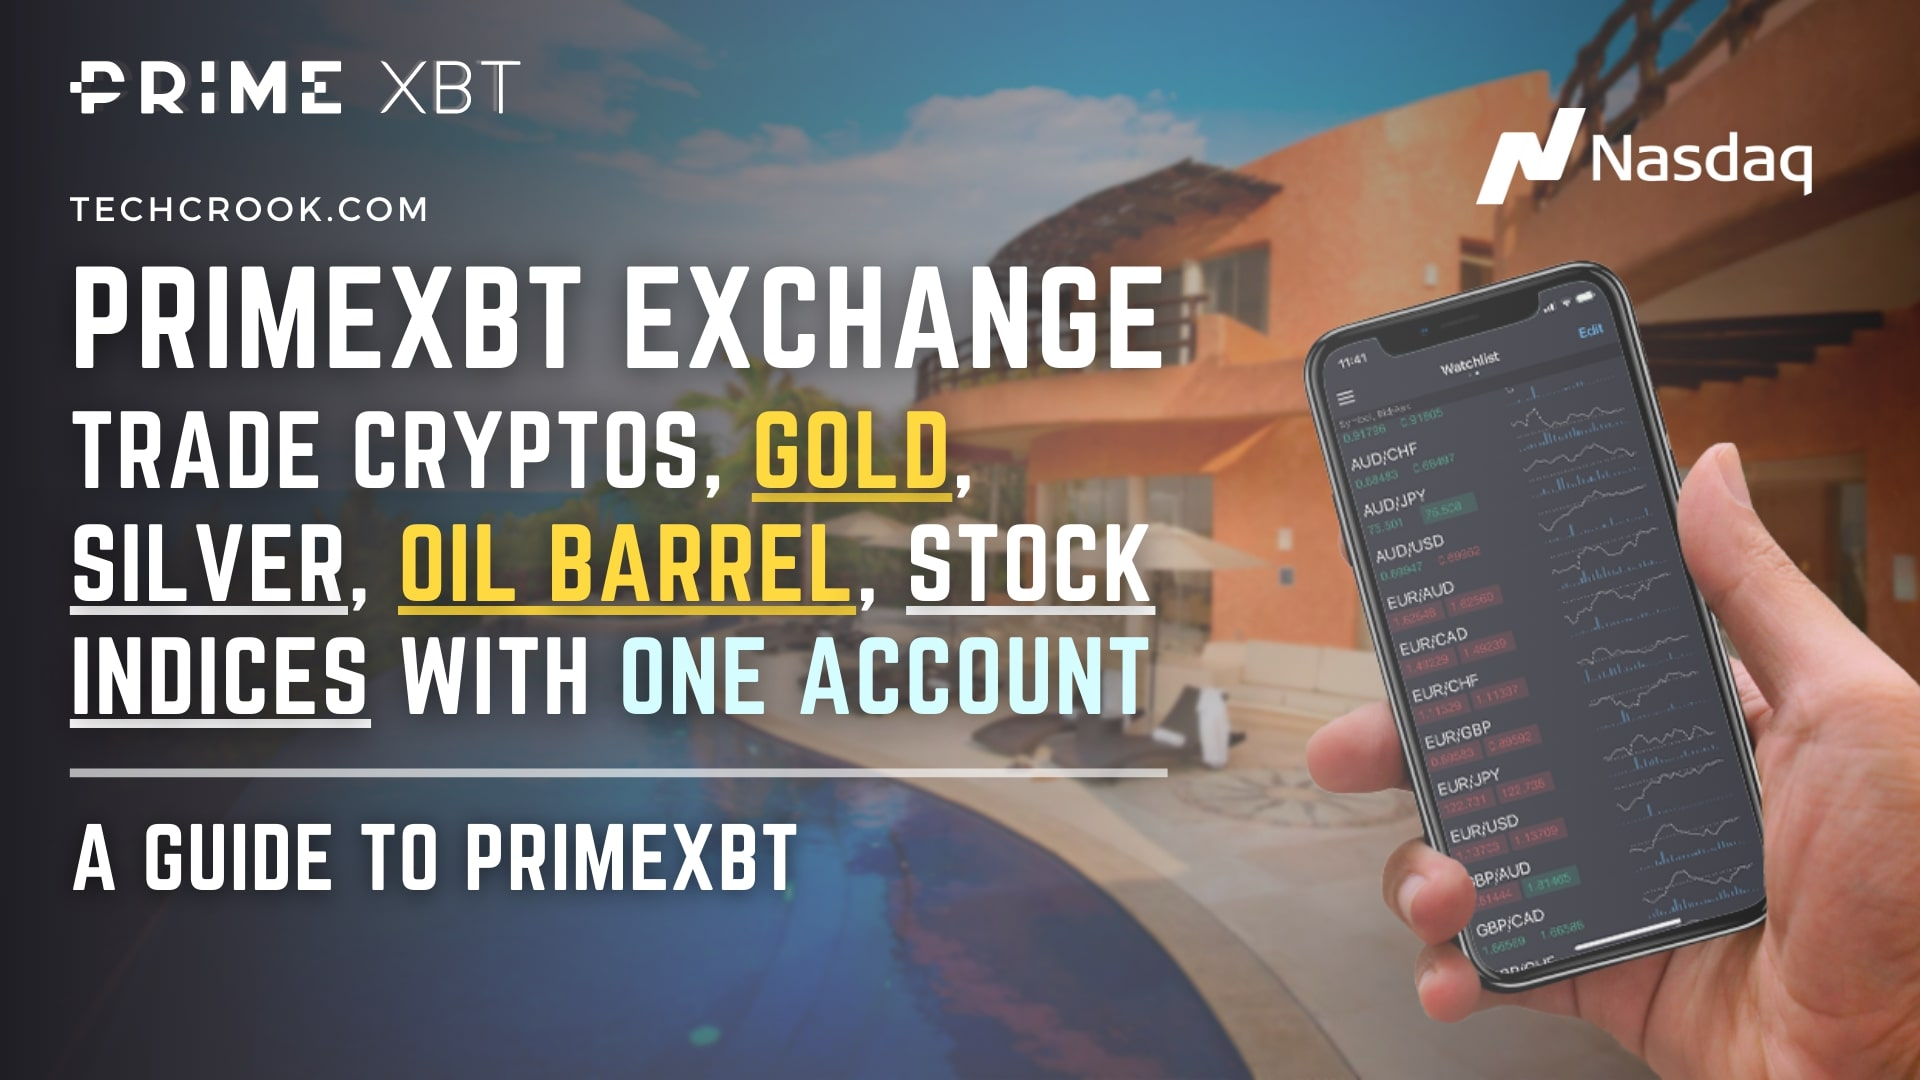 PrimeXBT Exchange – Trade Cryptocurrencies, Gold, Oil, Stock indices with one account